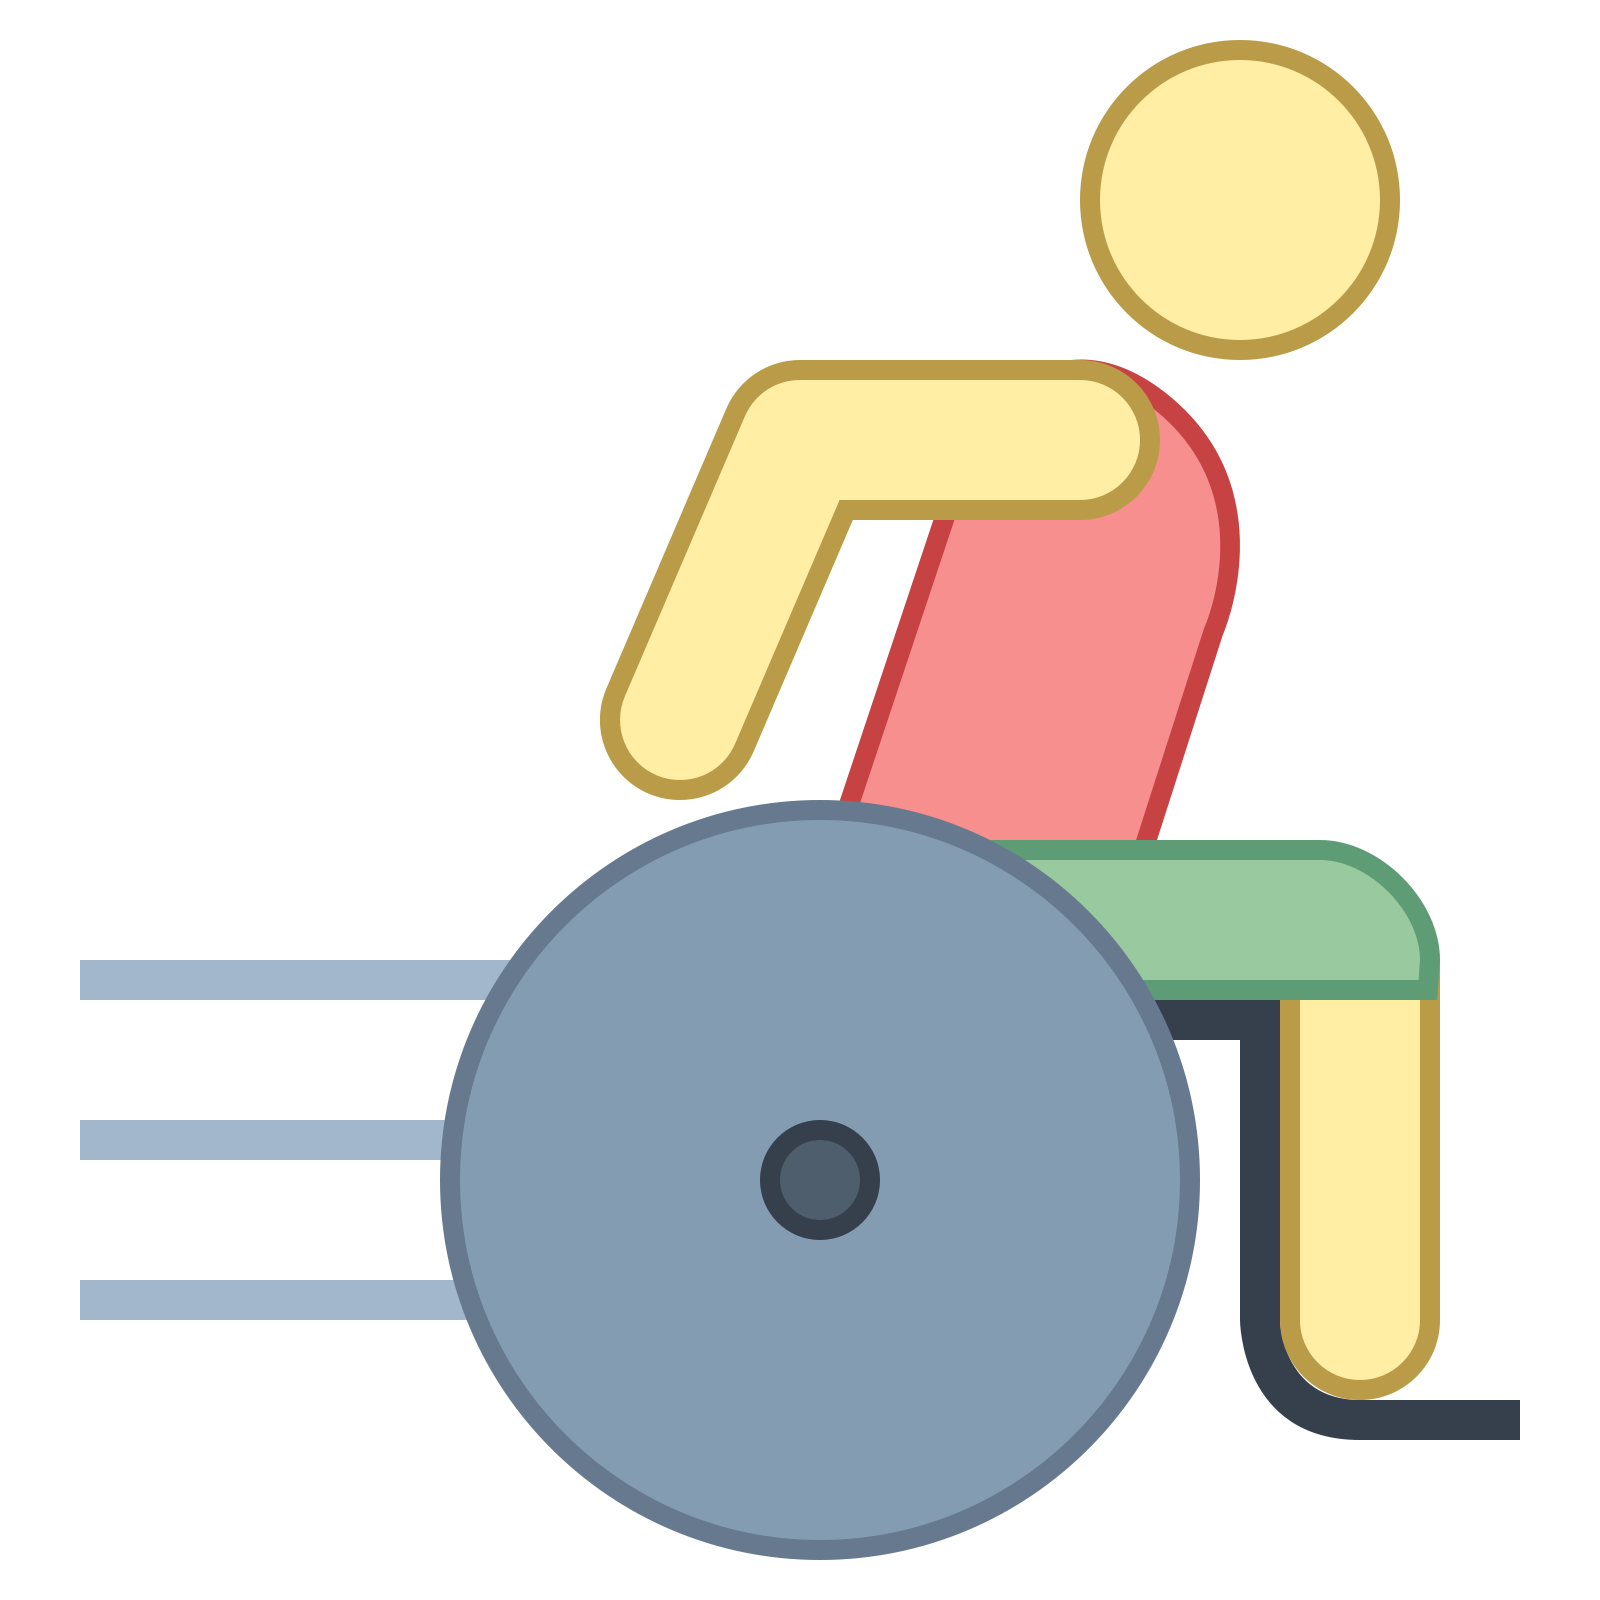 Vector rehabilitation icon. Handicapped free download png